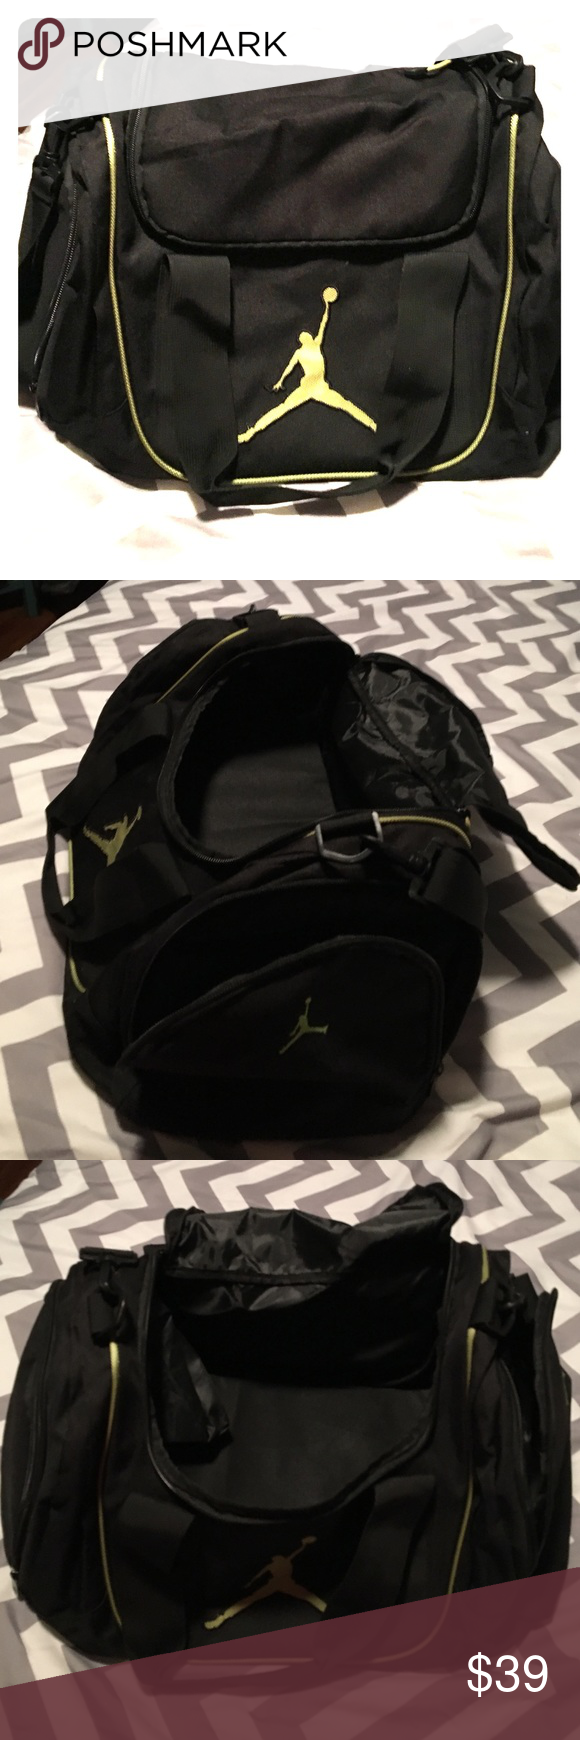 "Huge! Jordan Duffel Bag! New!  New! Michael Jordan, black w/ lime green logos & accent. 20"" wide 10""across, 12"" high! Holds ball shoes, basketballs, uniform etc. padded shoulder strap & handles. Super cool bag!!! Nike Bags Travel Bags"